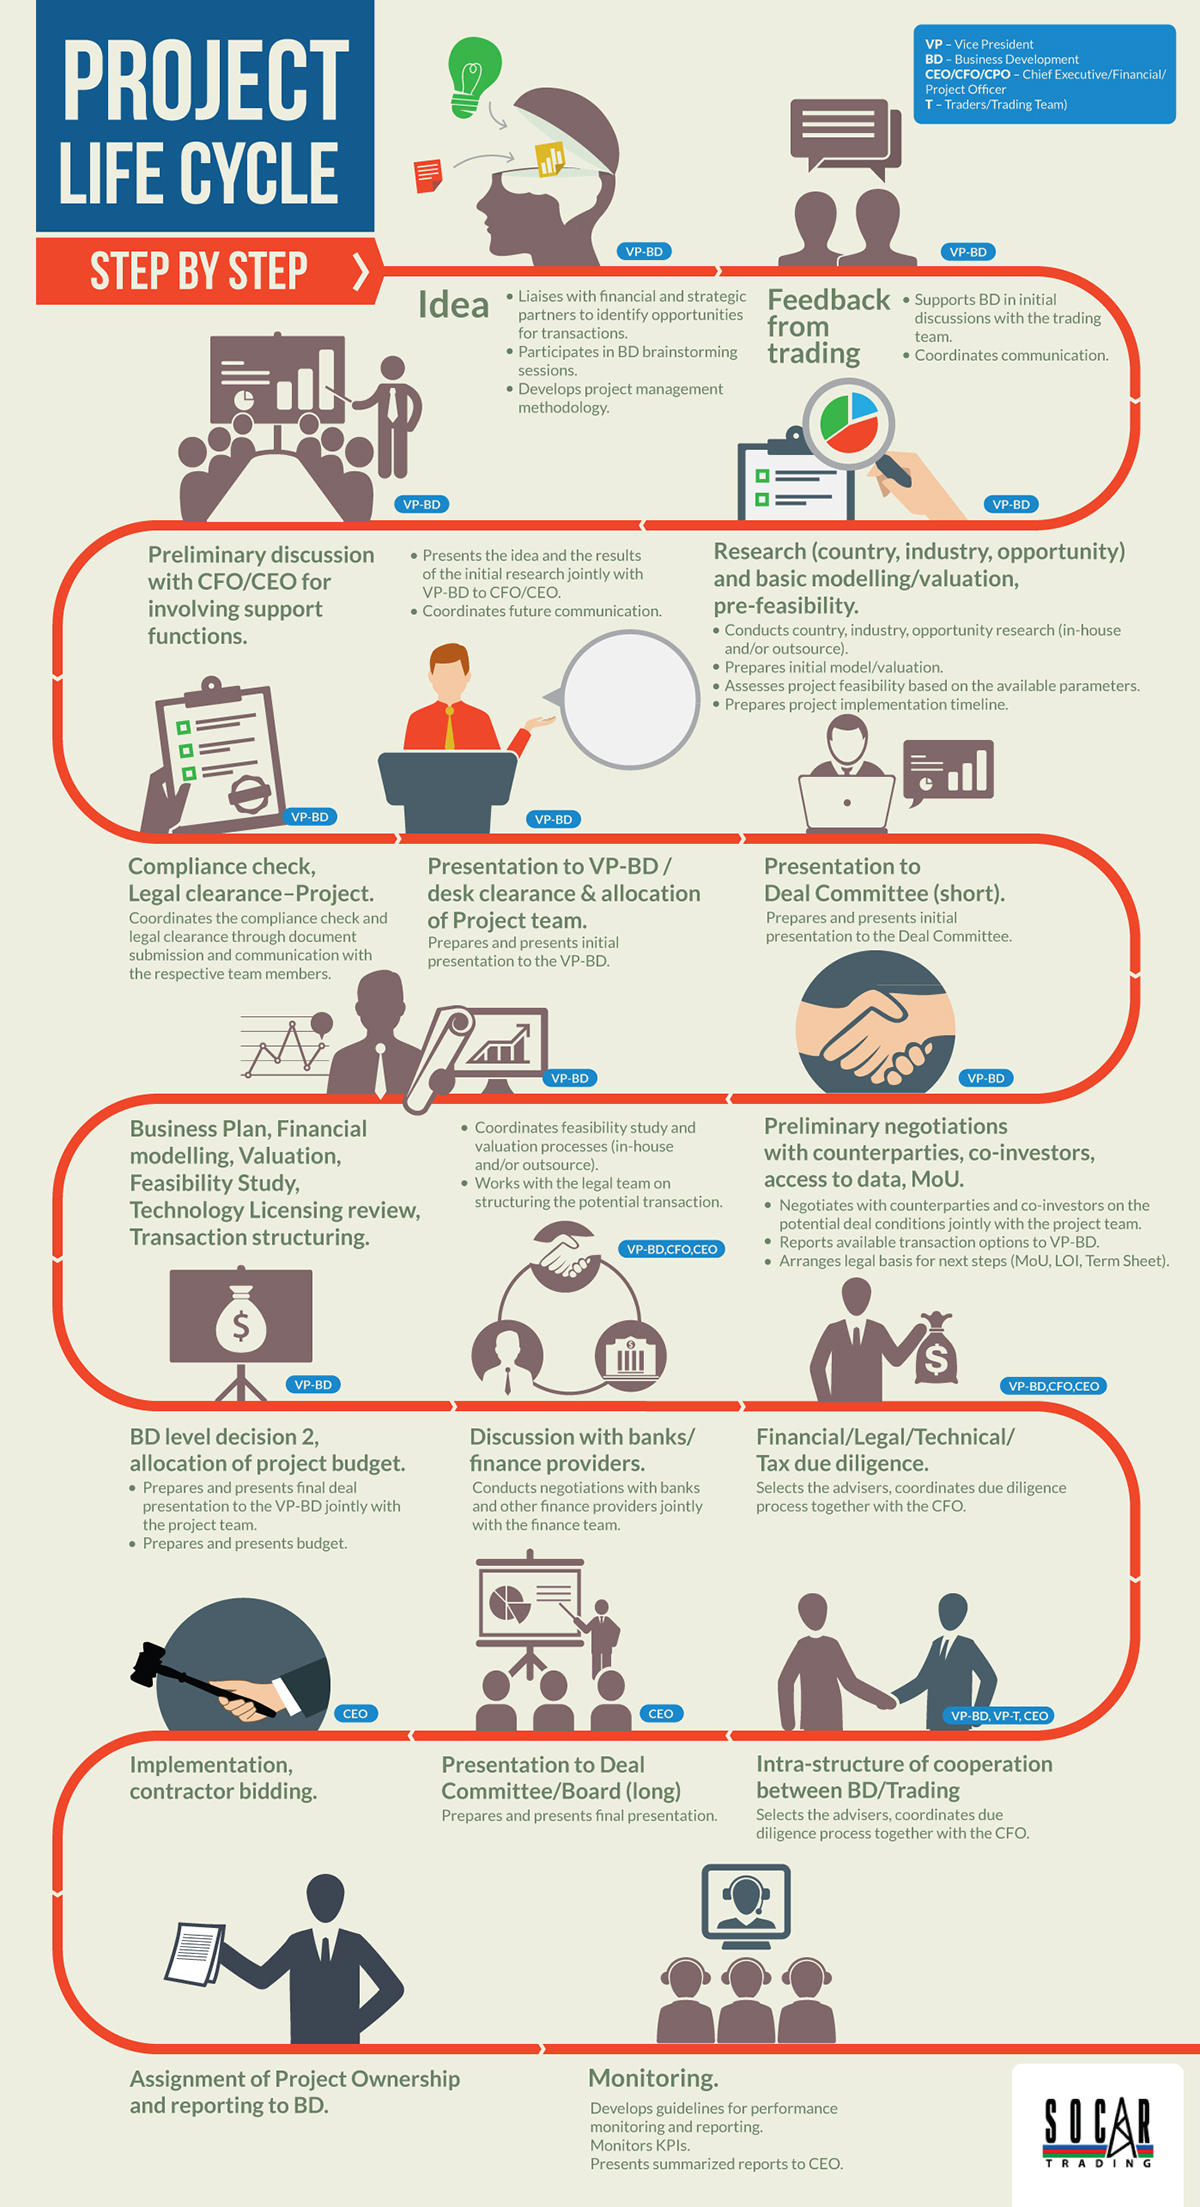 Project Life Cycle Infographic On Behance